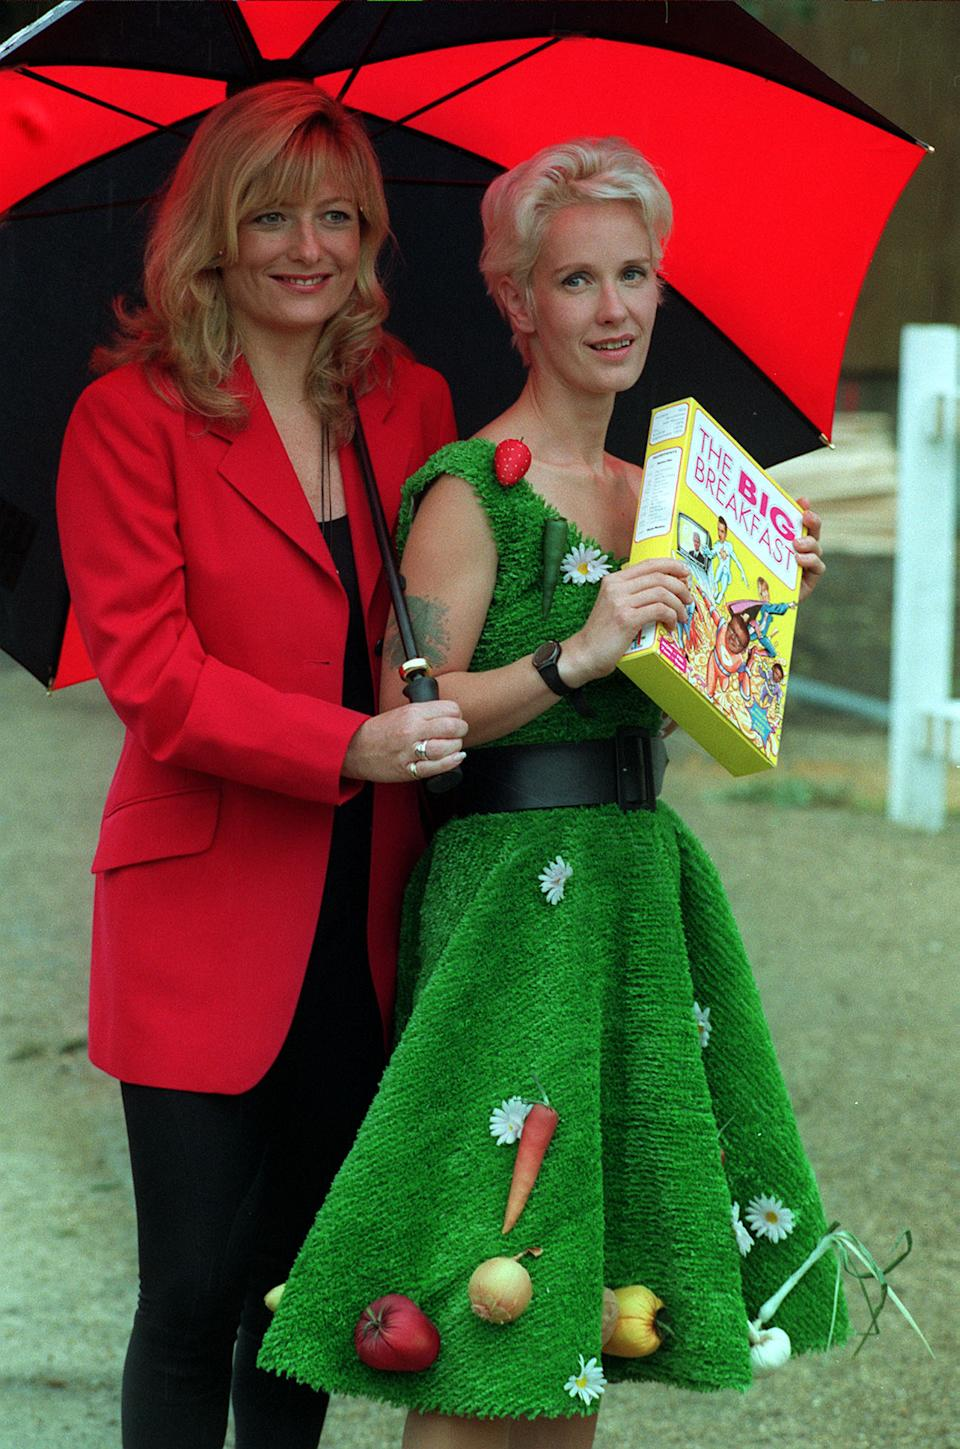 Gaby Roslin and Paula Yates outside the Big Breakfast studio in north east London.  The Big Breakfast is the new channel 4 breakfast programme.  *  17/9/2000: 41 year old Yates has died, her solicitor Anthony Burton confirmed Sunday September 17 2000. Scotland Yard said officers were called to an address in St Luke's Mews, Notting Hill, west London, this morning by an ambulance crew. The spokesman said a body was found in a bedroom and the cause of death will not be known until the post mortem.   (Photo by Neil Munns - PA Images/PA Images via Getty Images)